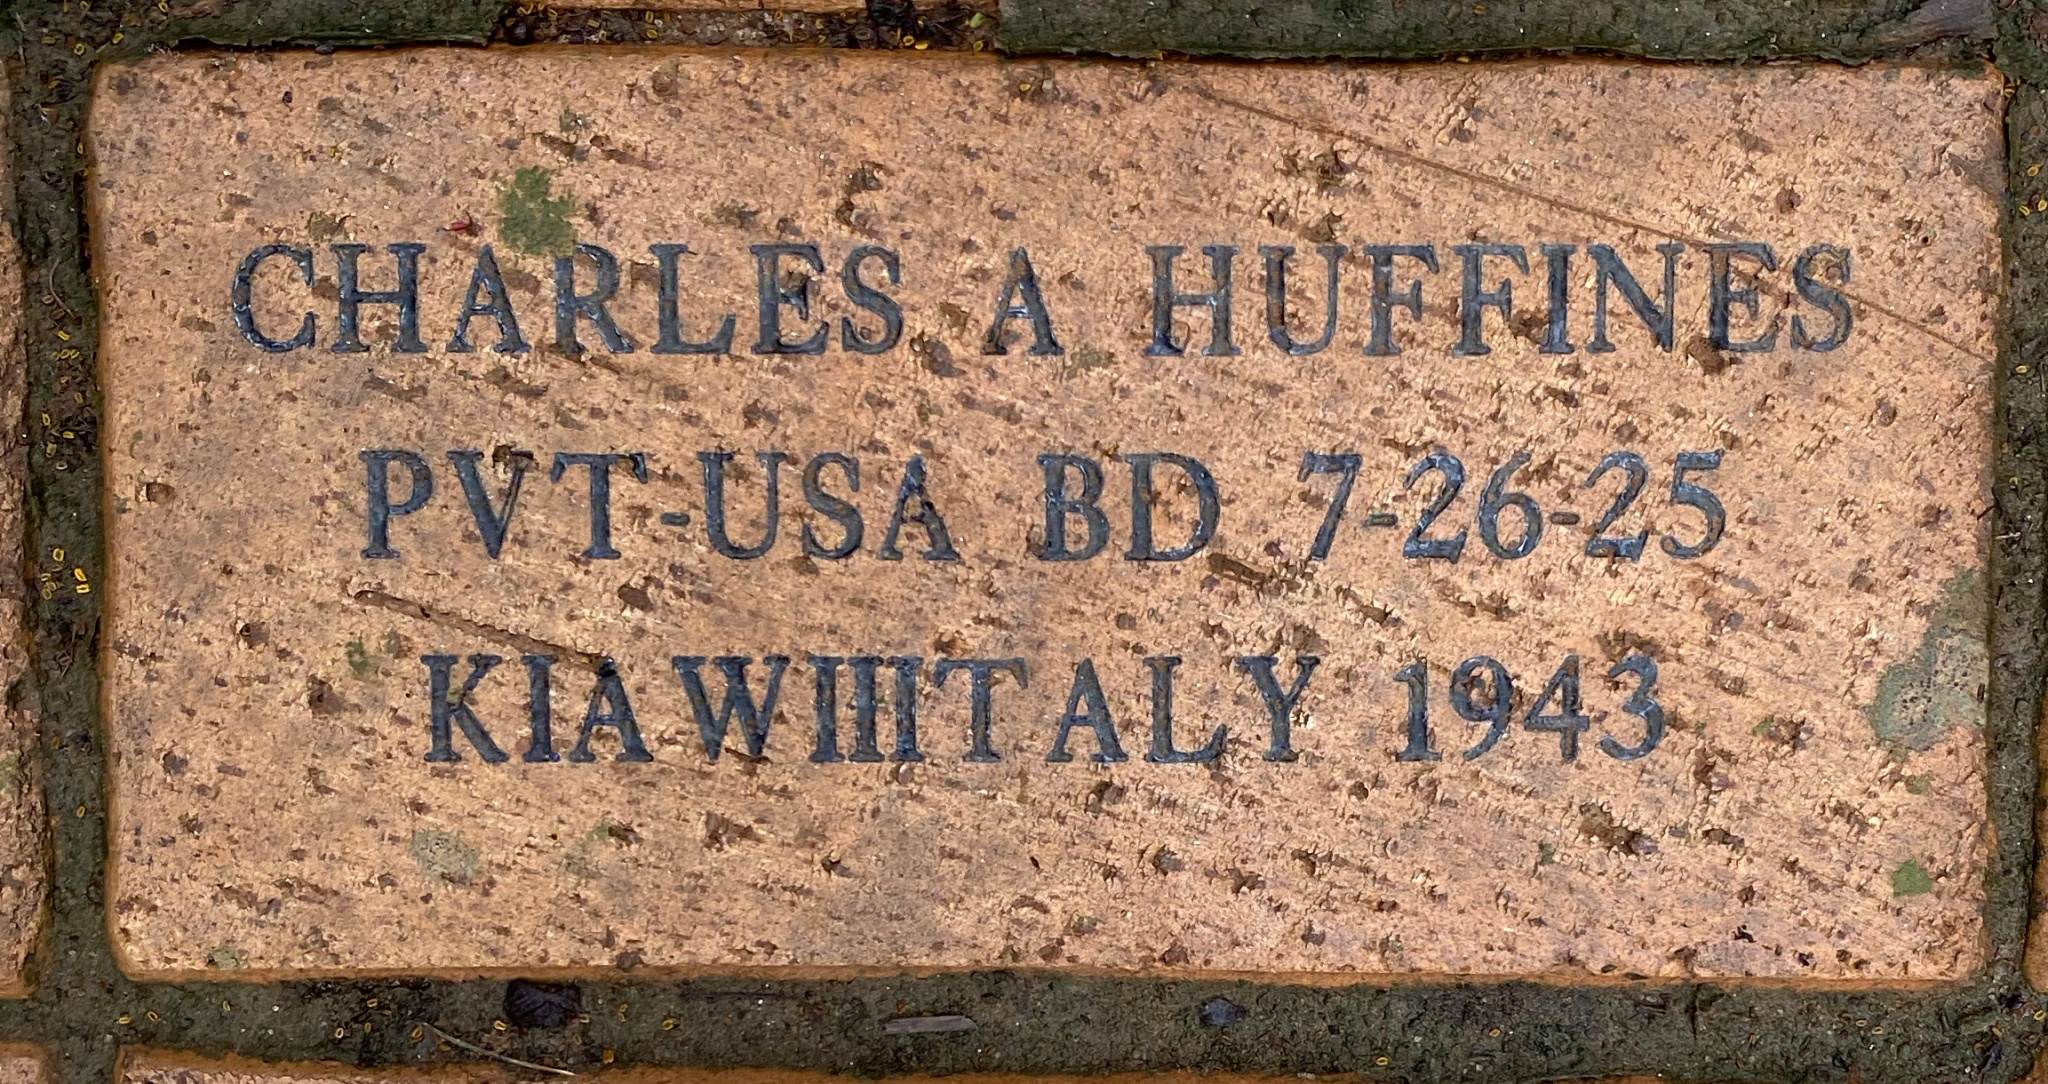 CHARLES A HUFFINES PVT-USA BD 7-26-25 KIA WIIITALY 1943